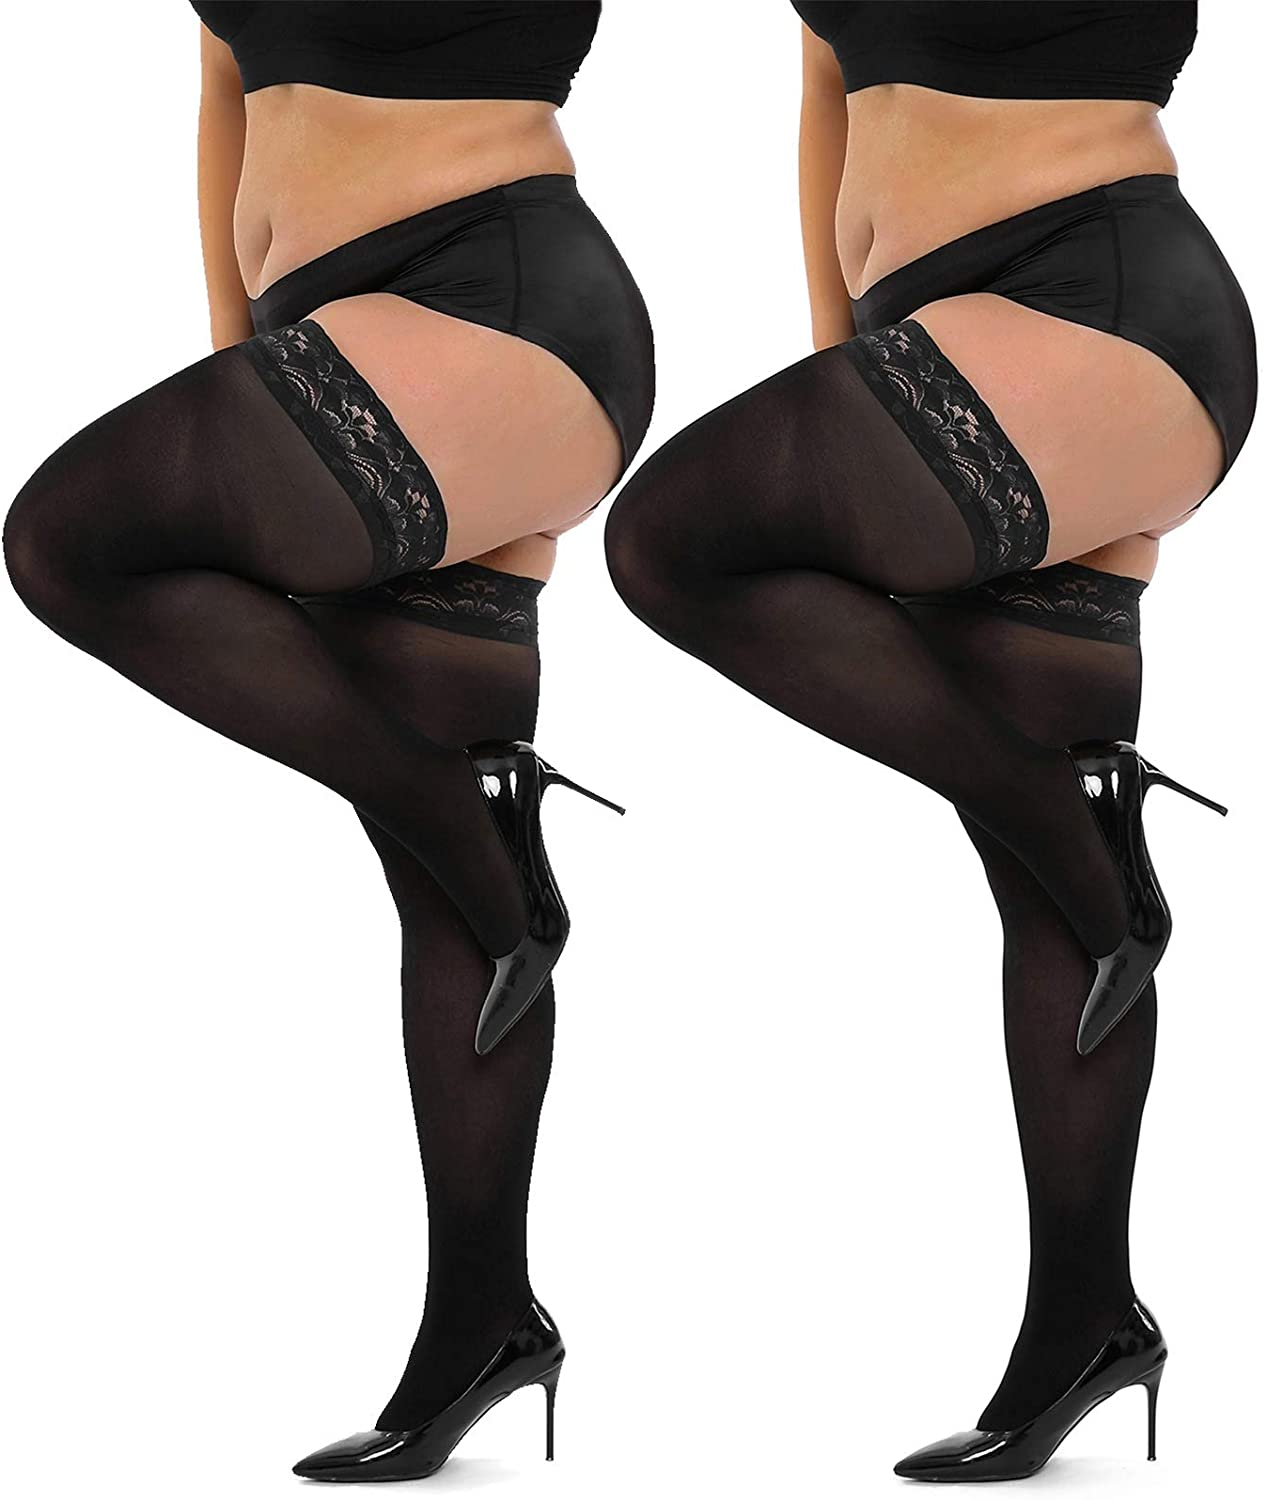 HONENNA Semi Sheer Stay Up Lingerie Plus Size Thigh High Stockings Lace Top Pantyhose for Women